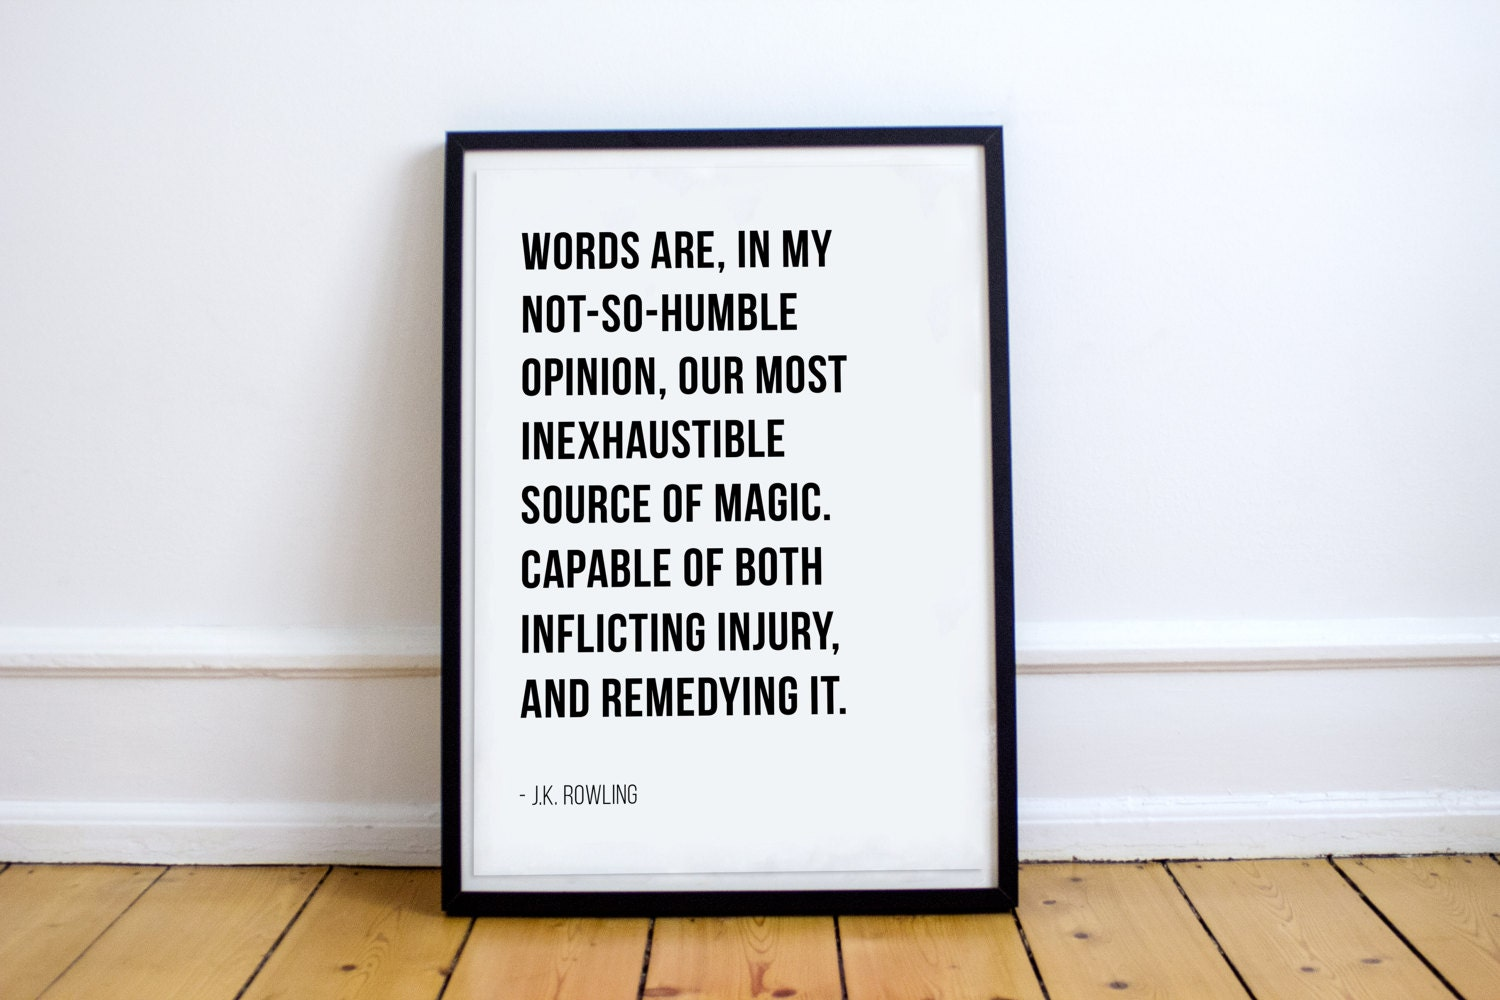 Words Are In My Not So Humble Opinion Our Most Inexhaustible Source Of Magic J K Rowling Letter Board Quote Print